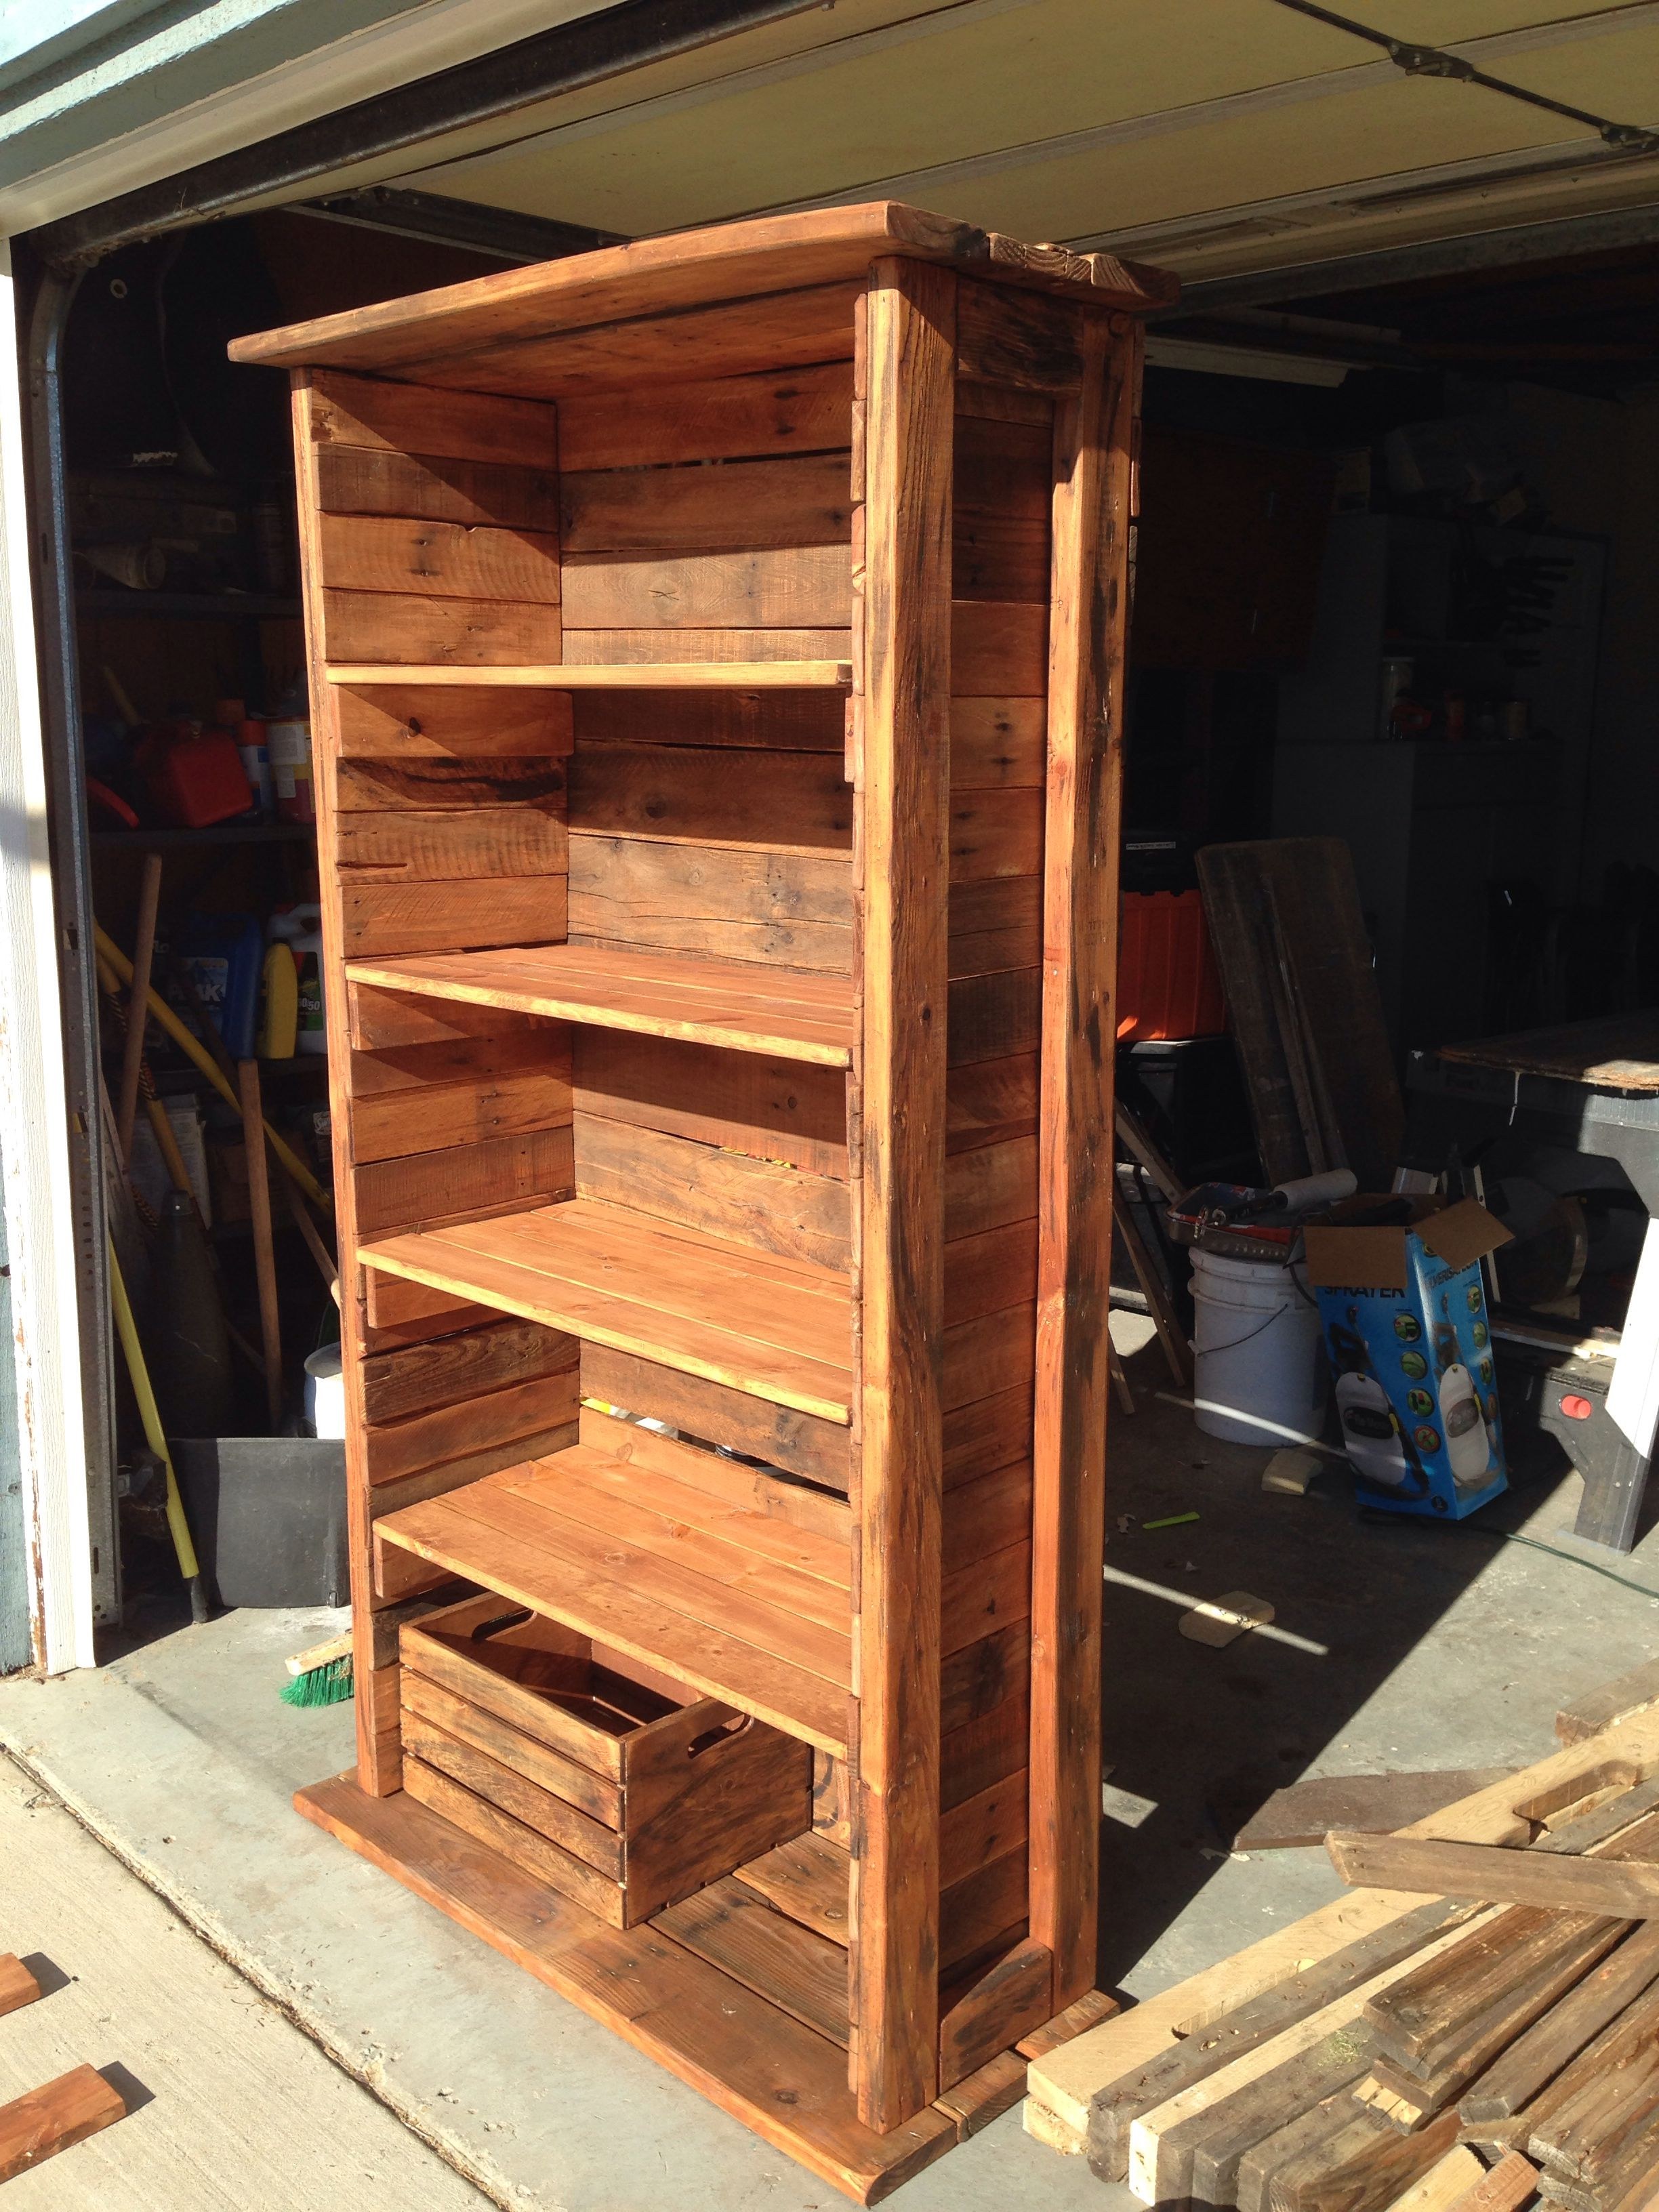 Bookshelf made out of pallets and recycled wood ...